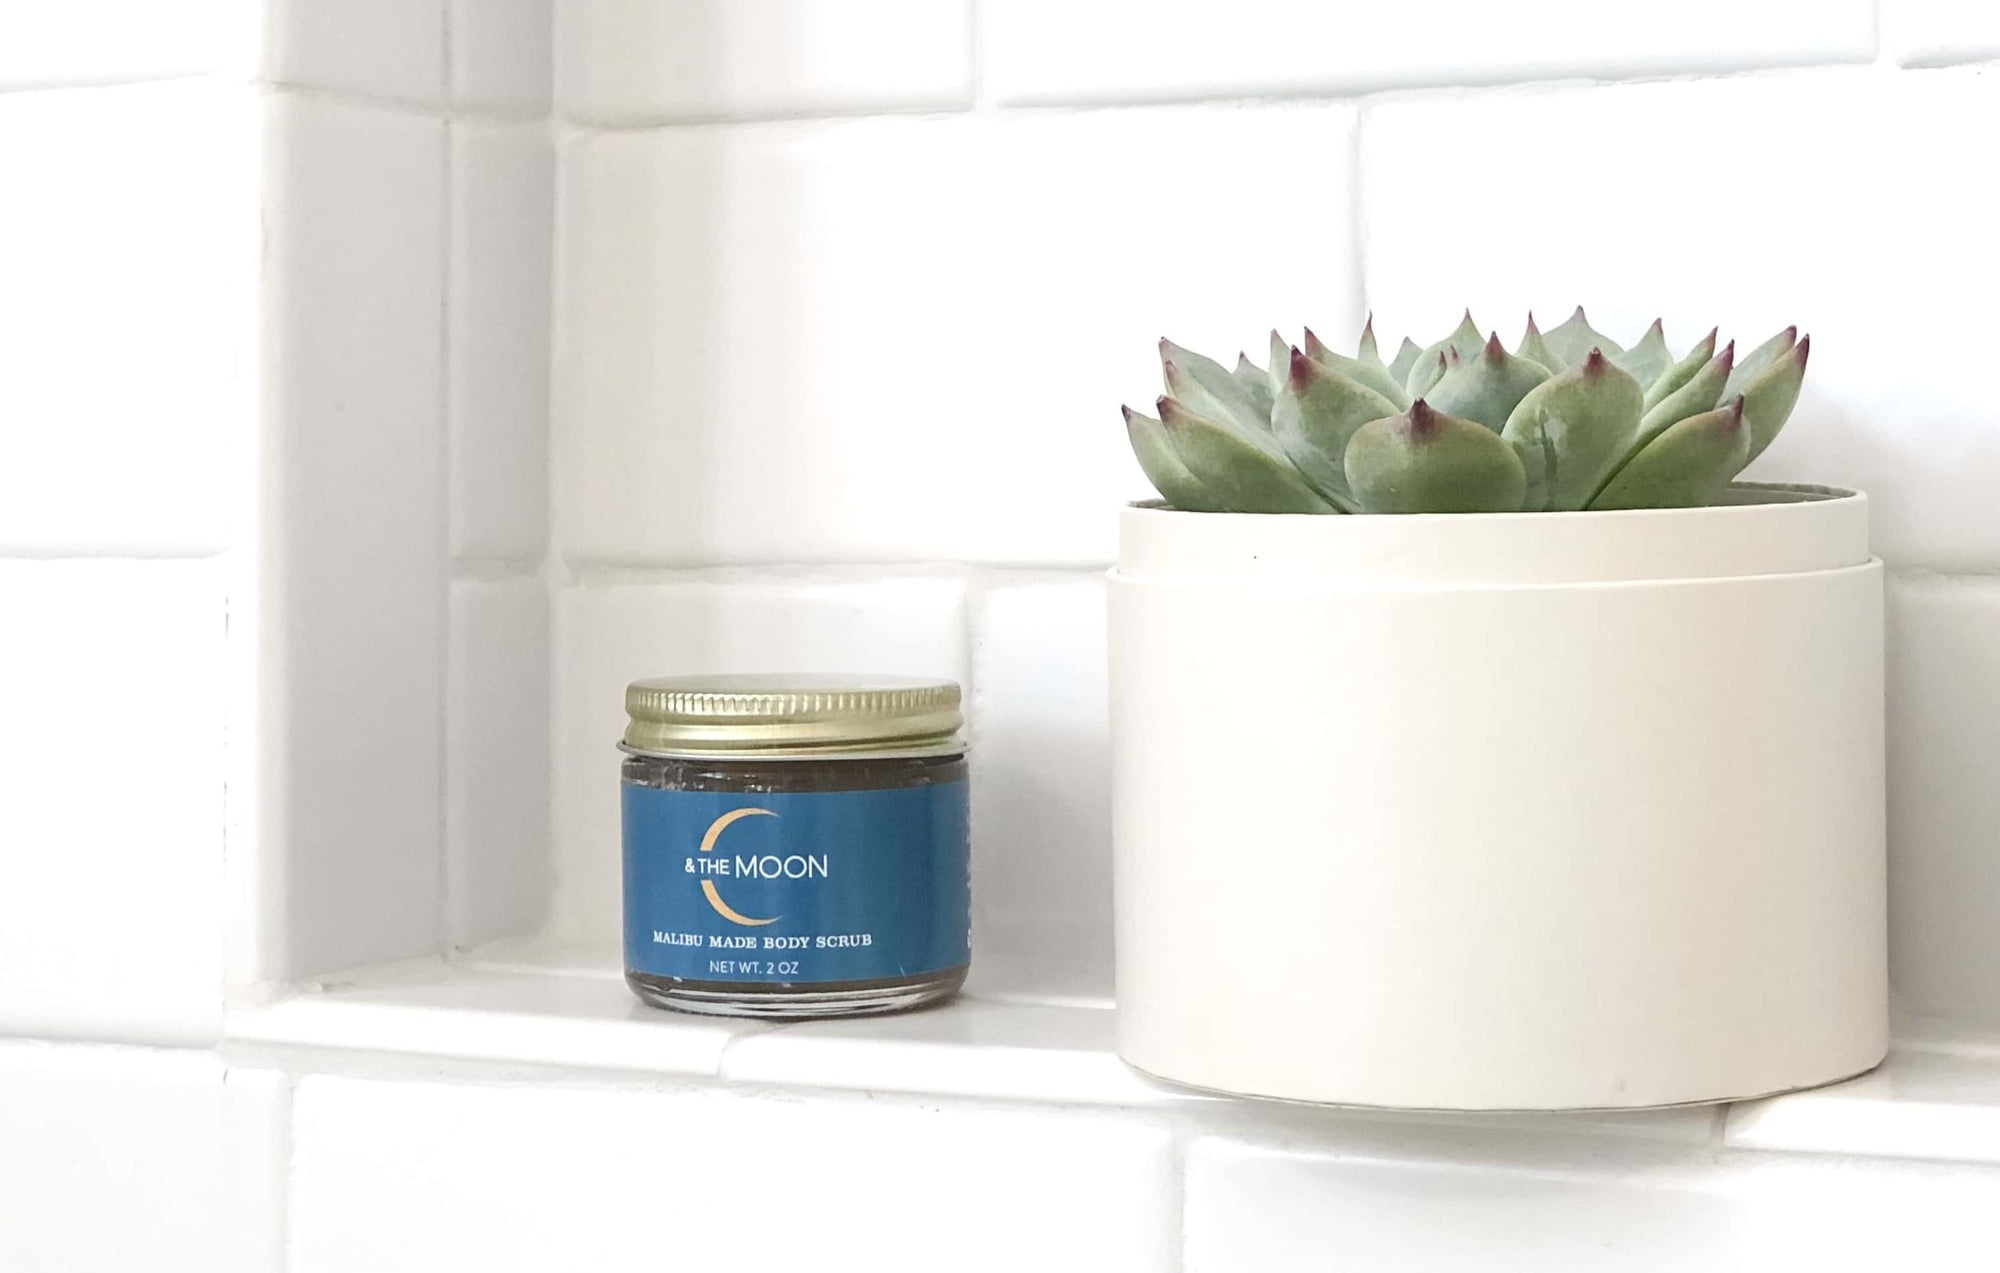 C And The Moon body scrub sitting on a shower shelf next to a succulent.